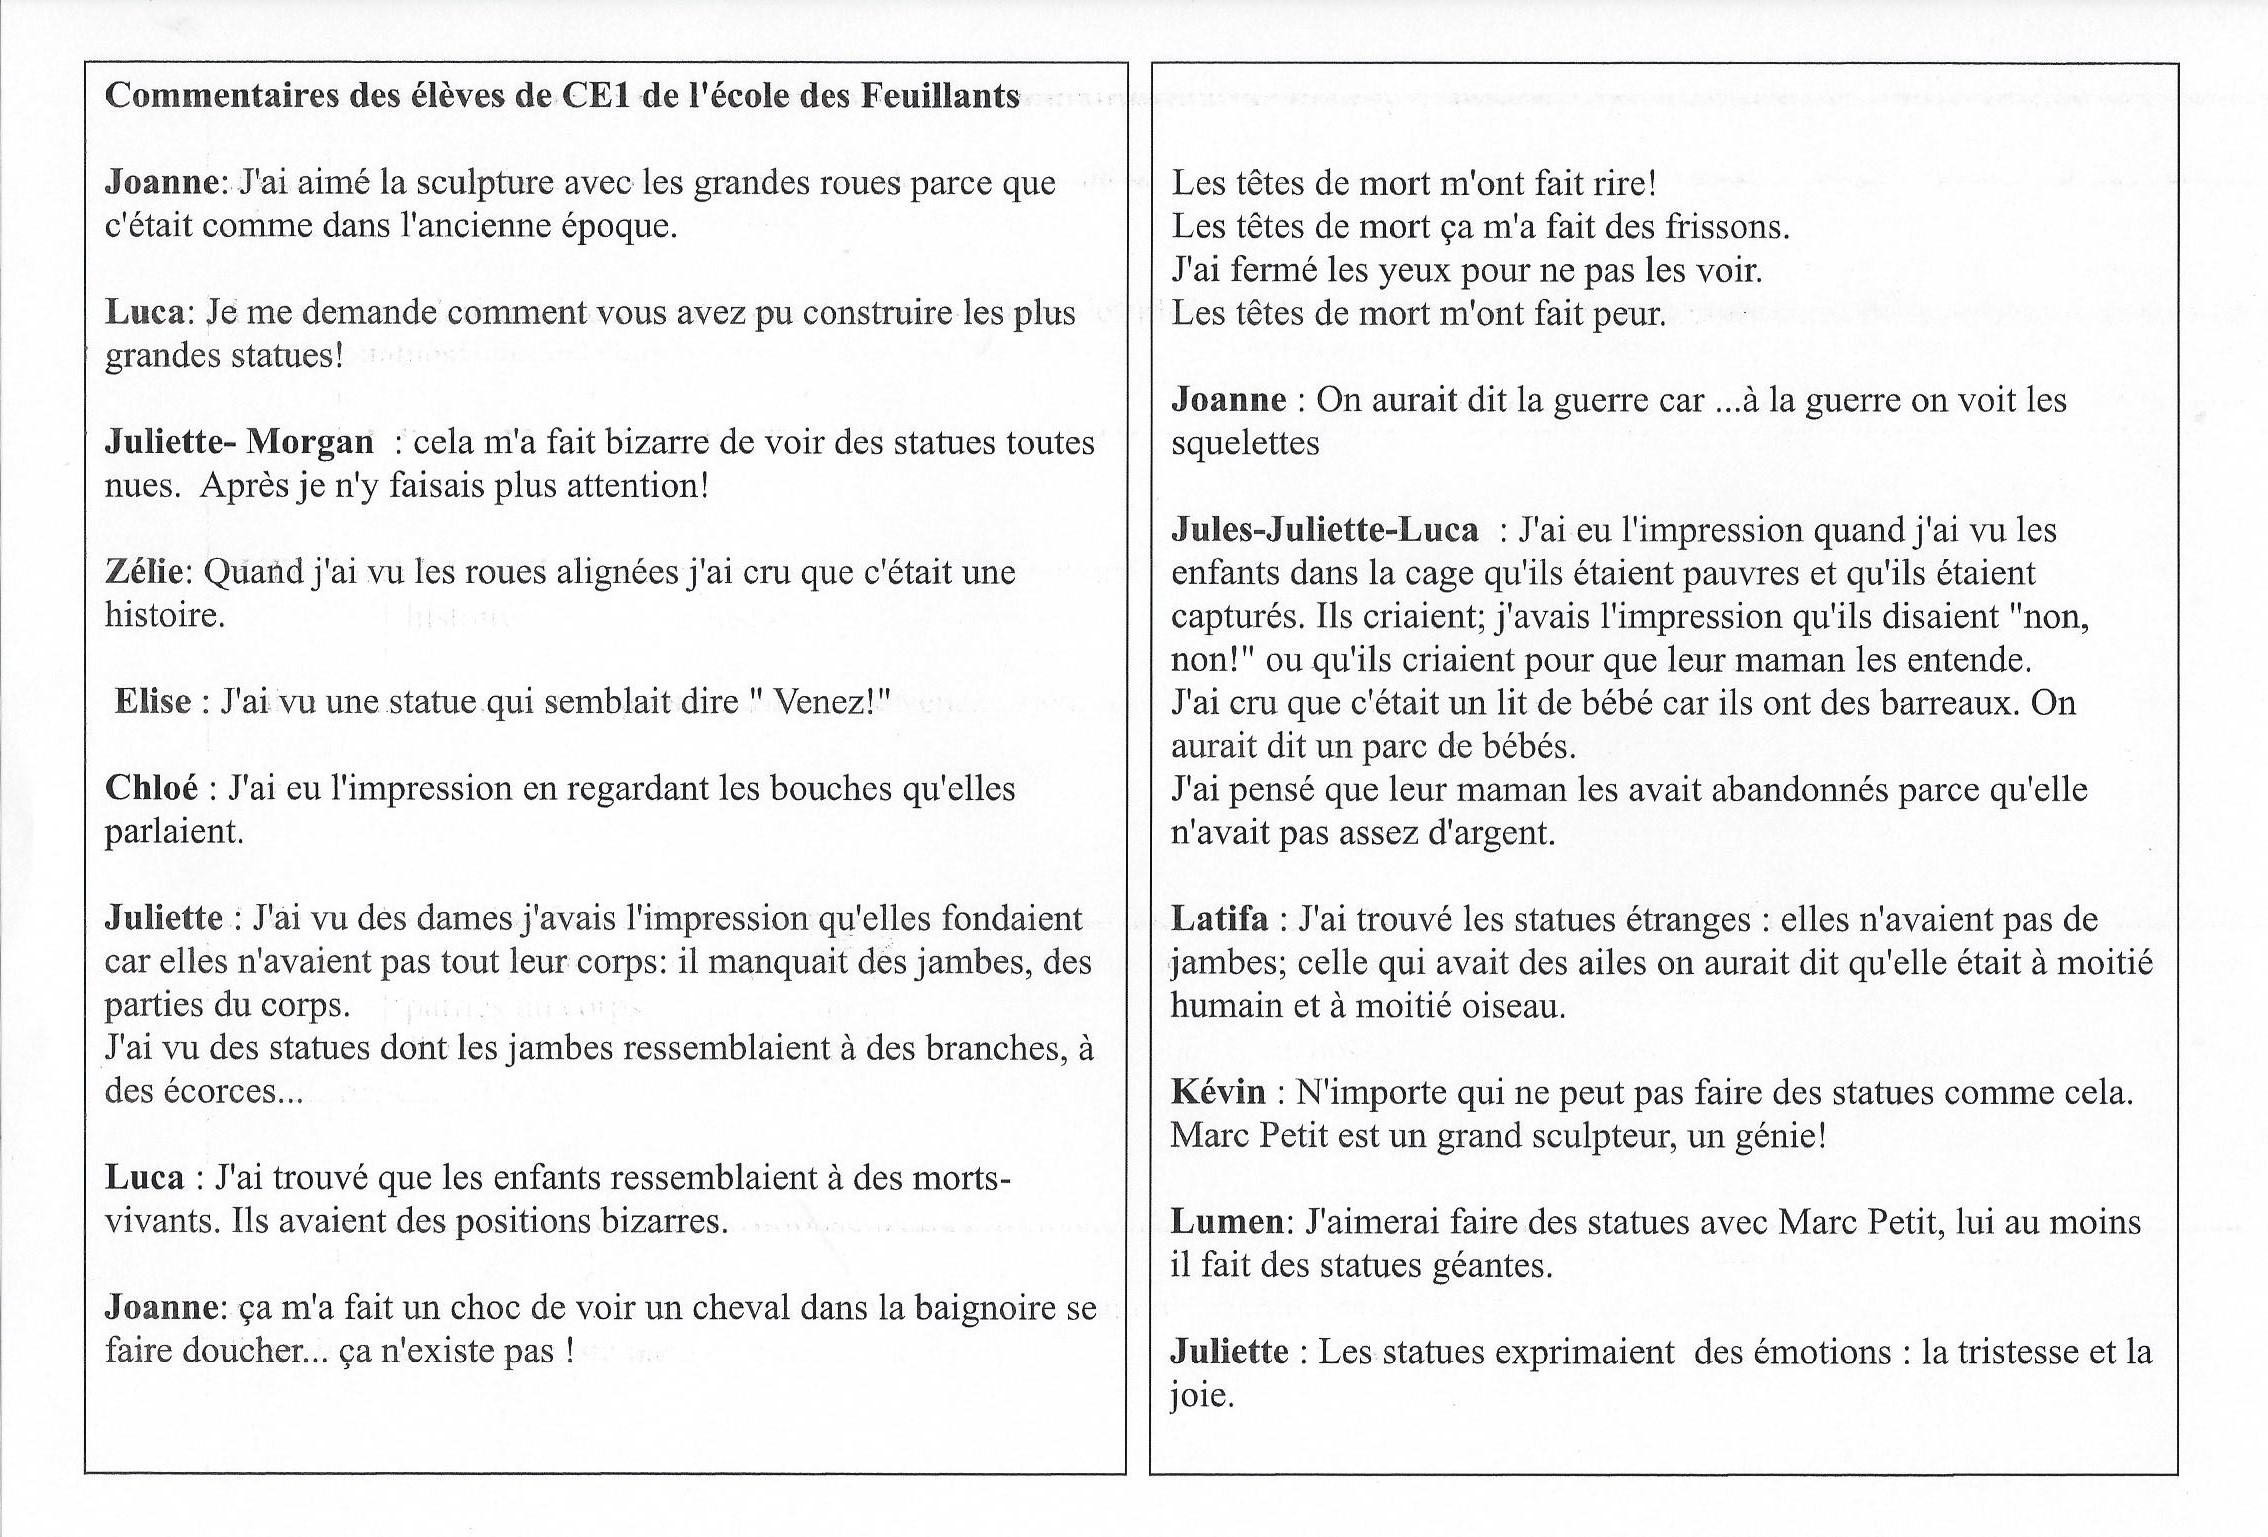 A5-2016-03-21-Commentaires1.jpg